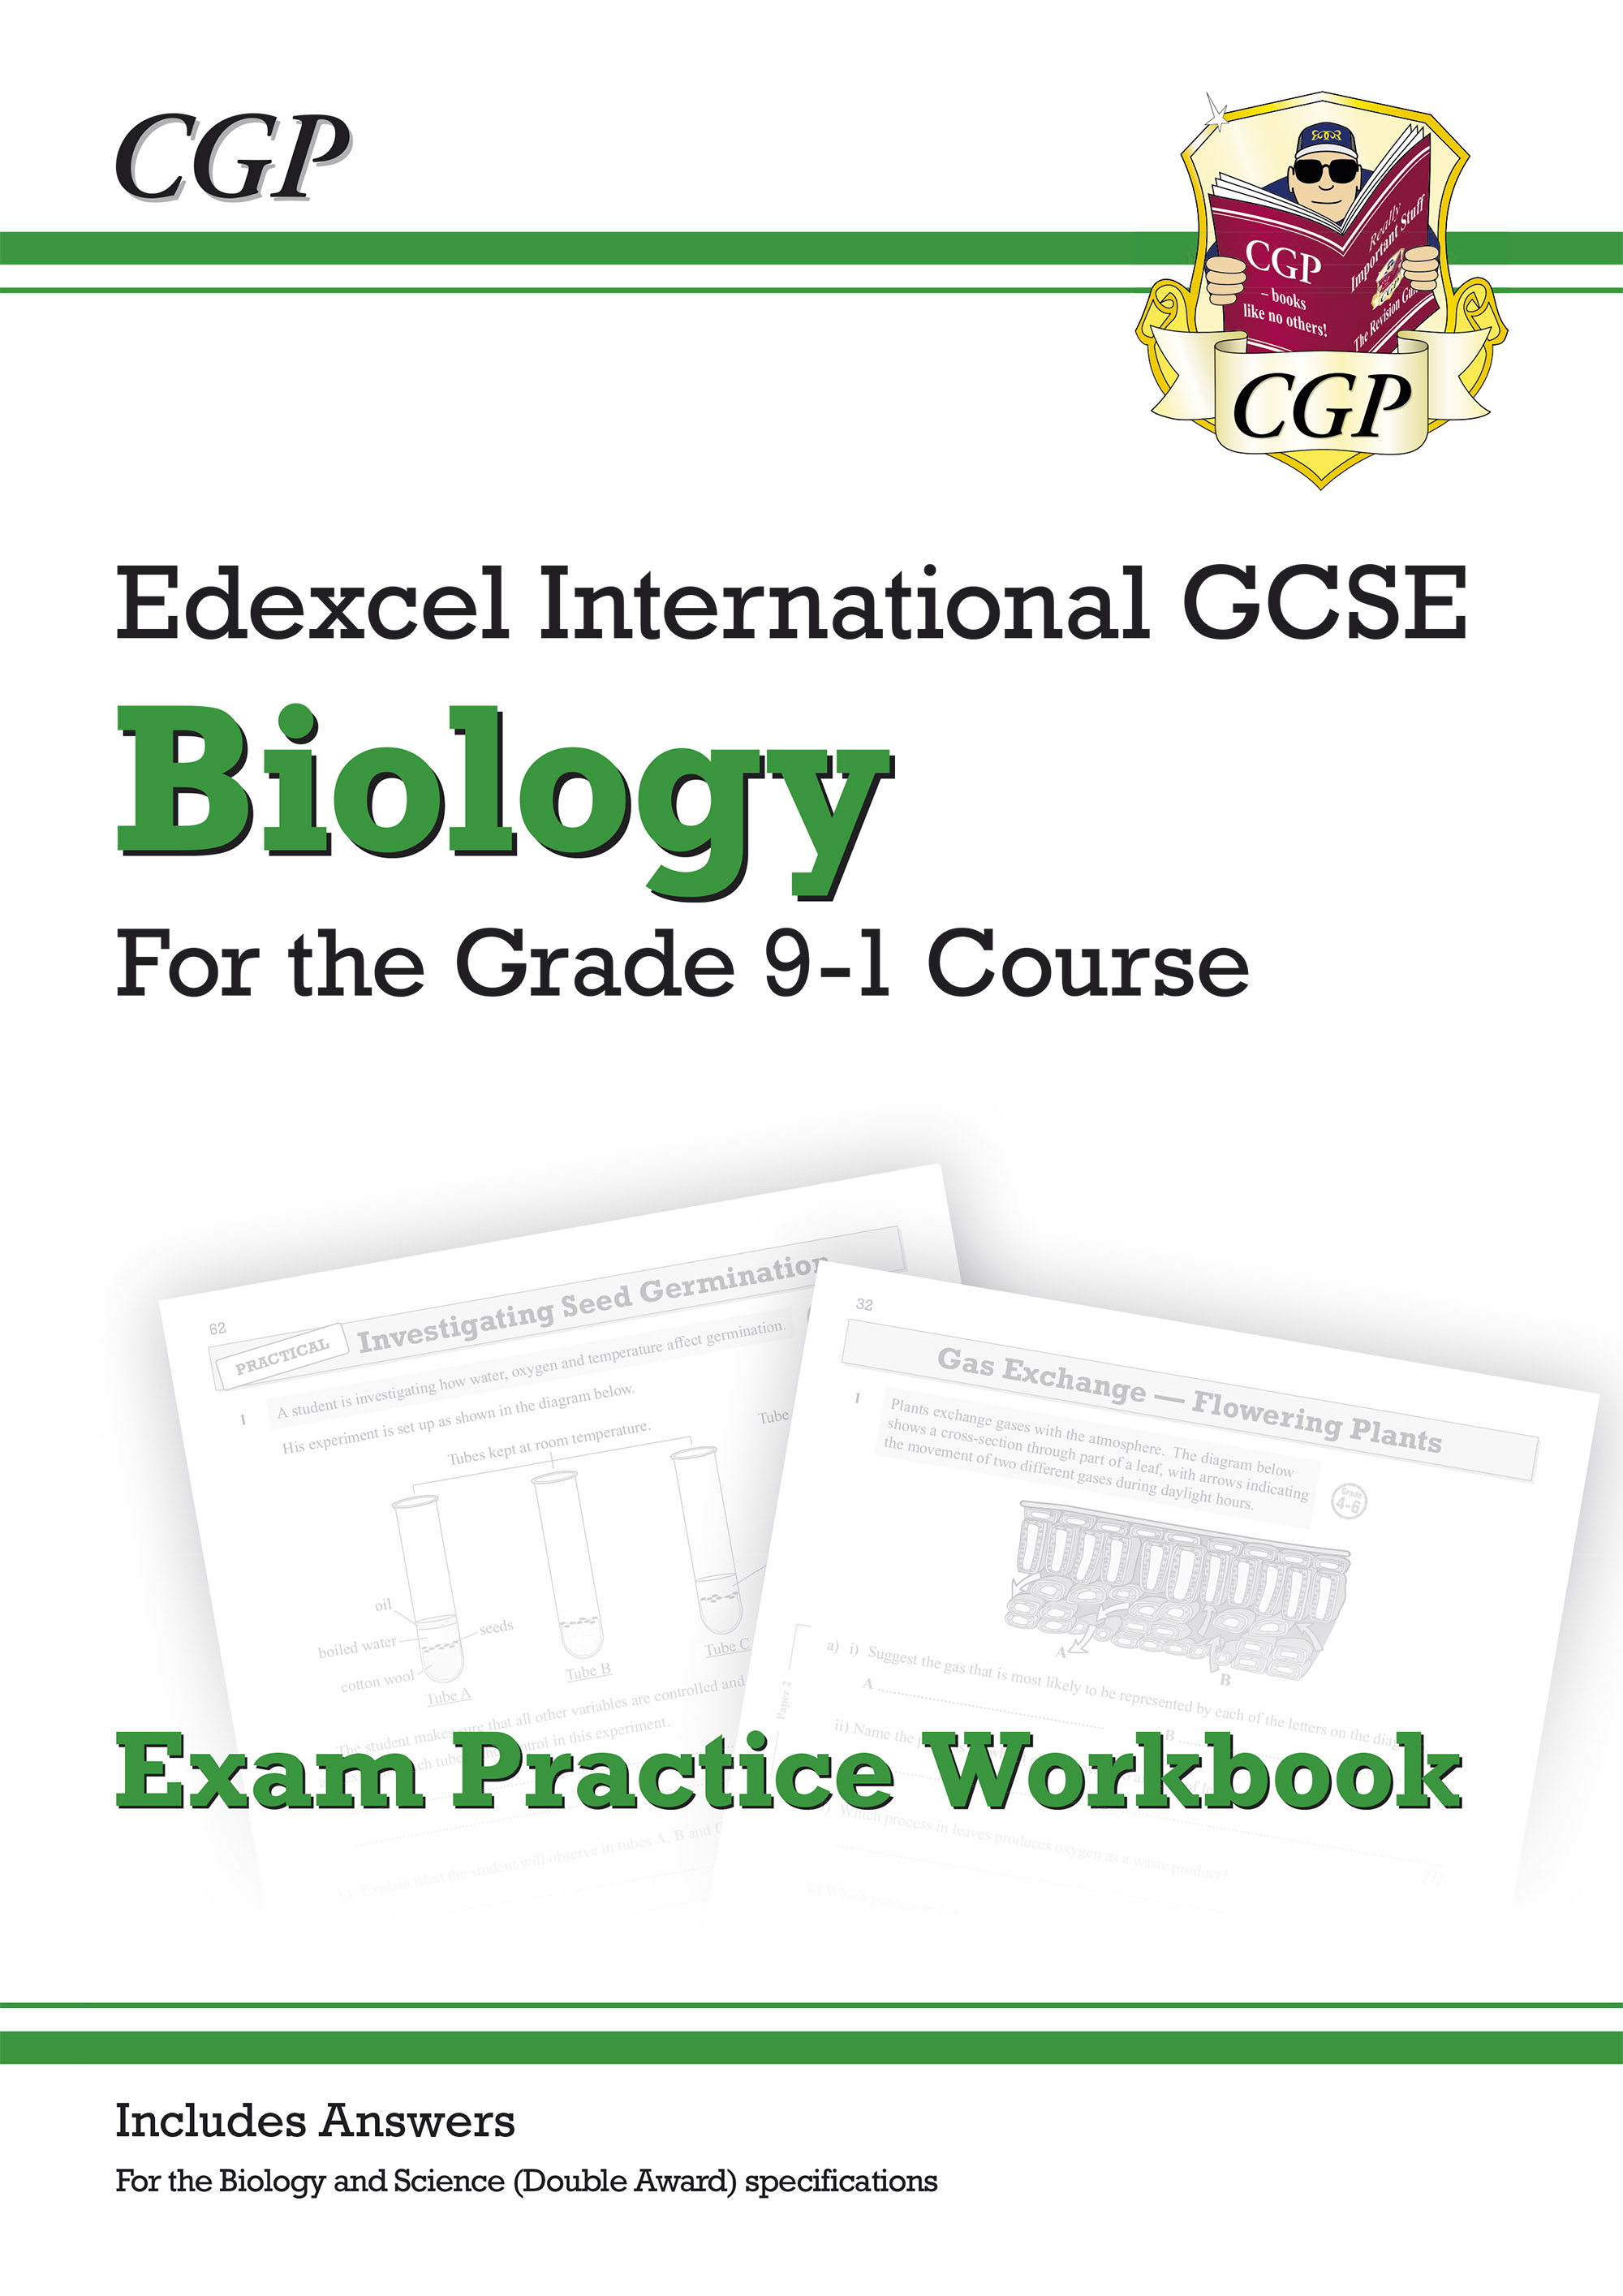 BEQI42DK - New Grade 9-1 Edexcel International GCSE Biology: Exam Practice Workbook (includes Answer